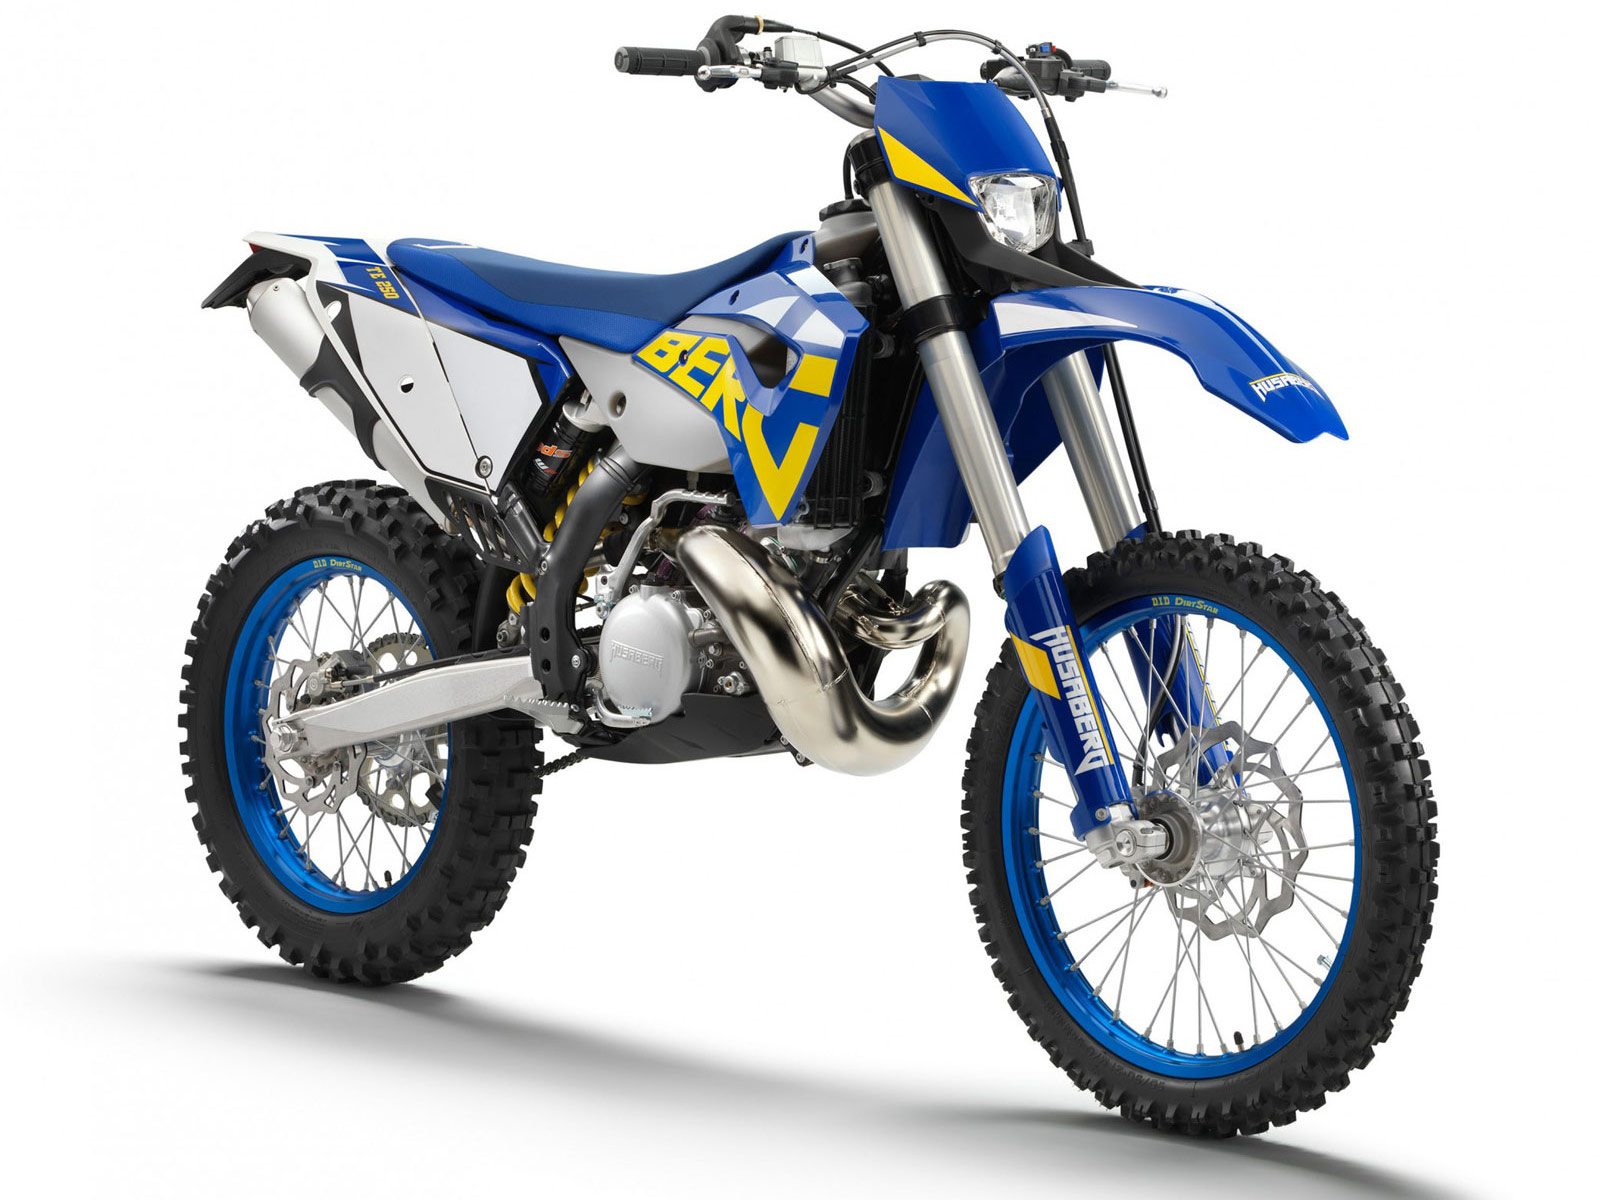 2011 husaberg te250 wallpapers motorcycle accident lawyers. Black Bedroom Furniture Sets. Home Design Ideas